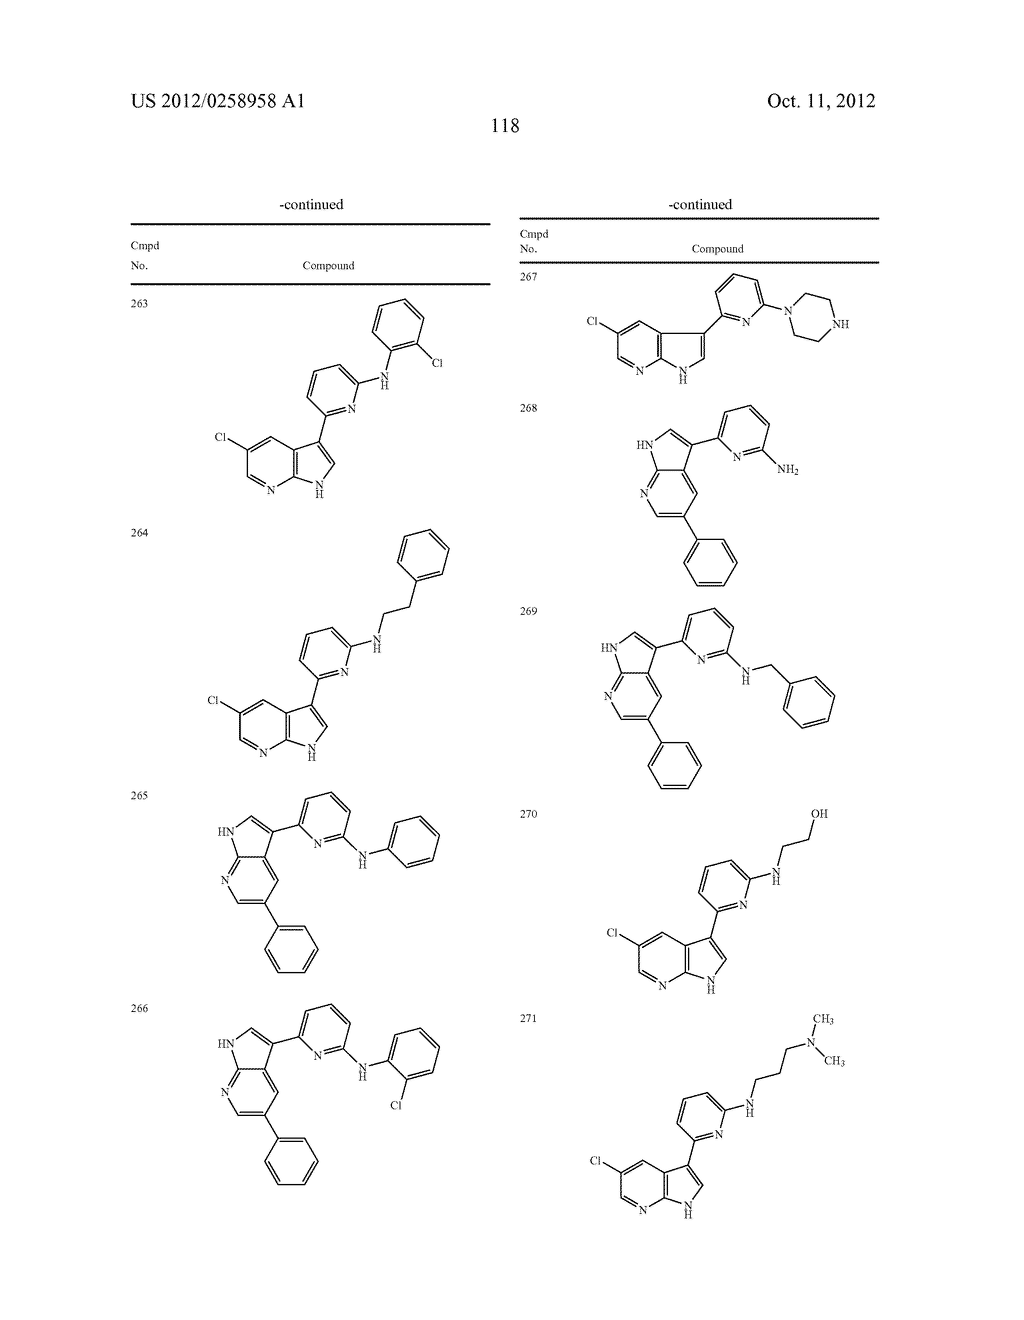 AZAINDOLES USEFUL AS INHIBITORS OF JAK AND OTHER PROTEIN KINASES - diagram, schematic, and image 119